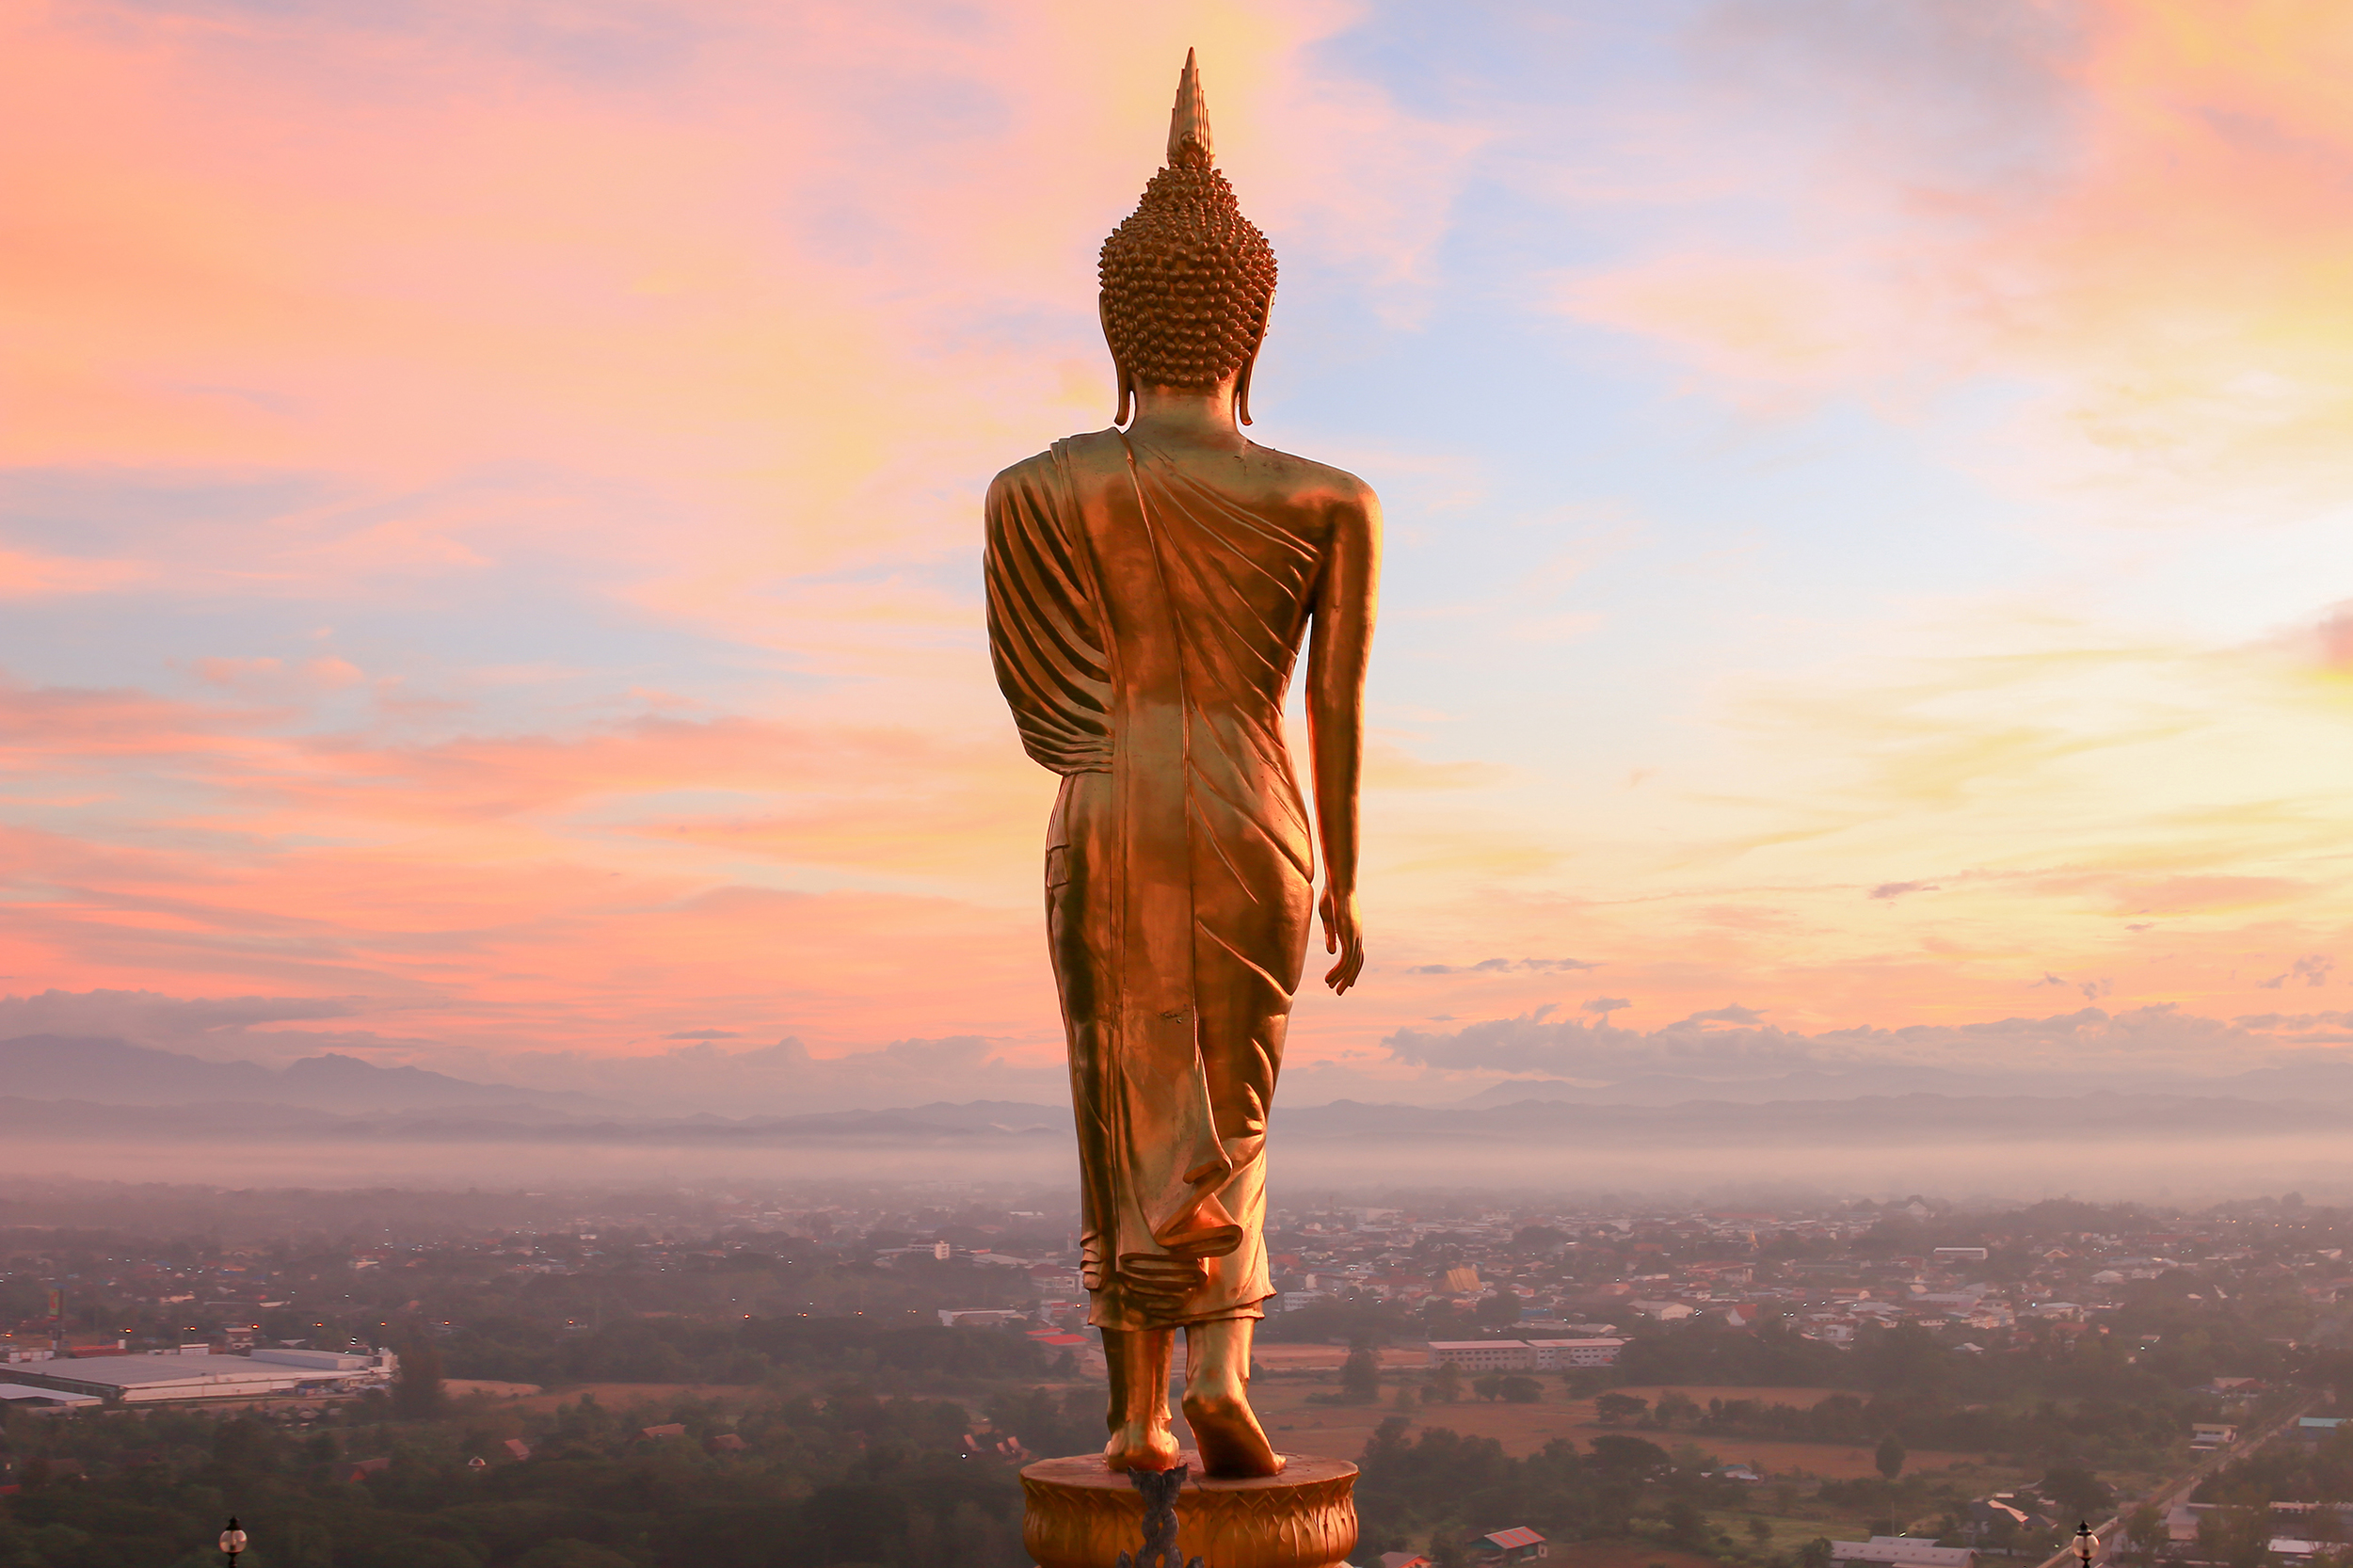 Golden buddha statue overlooking city